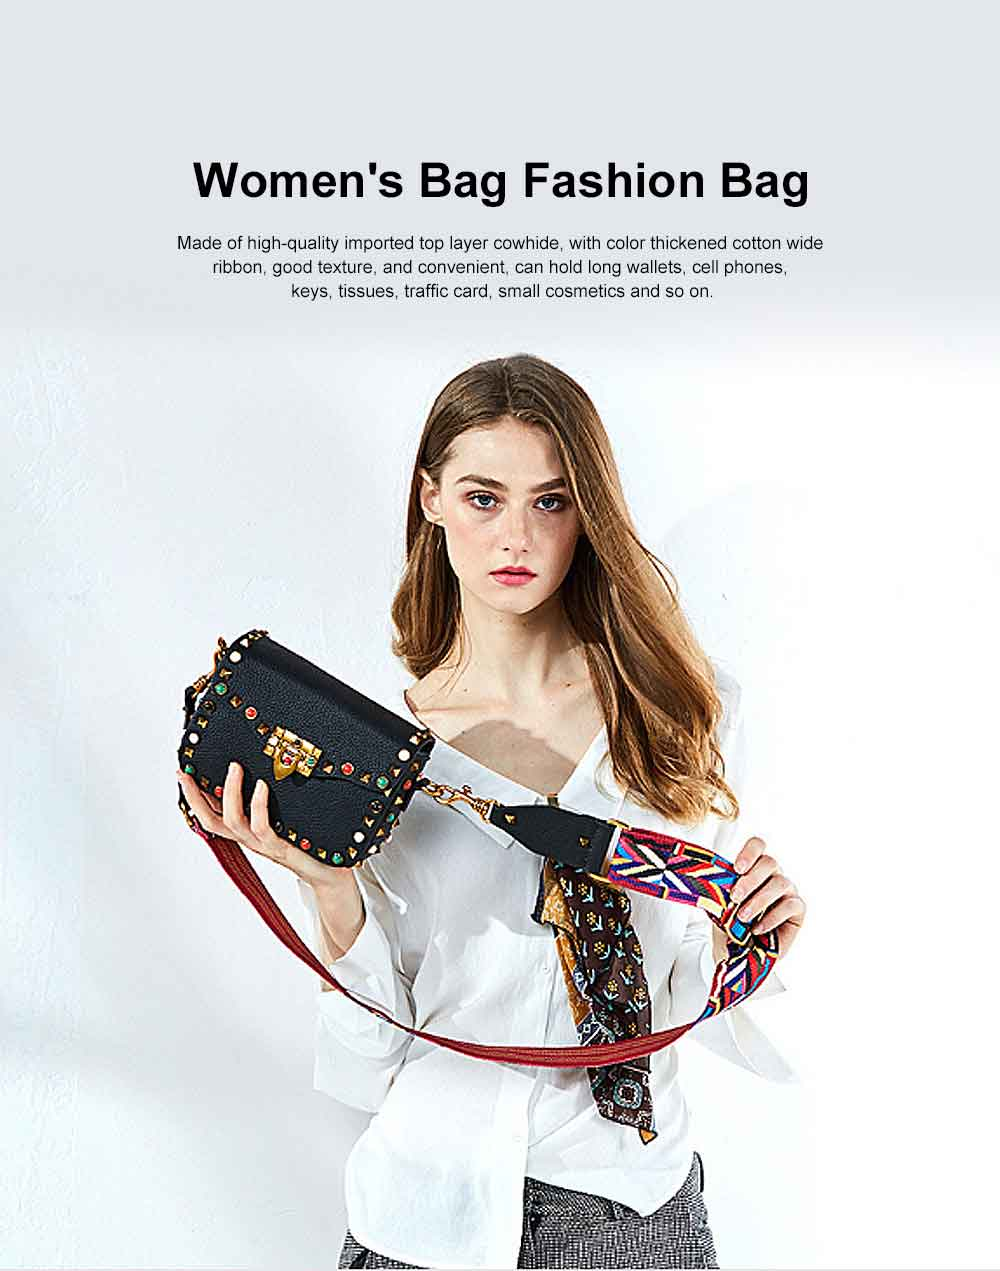 Color Thickened Cotton Wide Ribbon Shoulder Bag, Leather Diagonal Bag for Female 2019 0